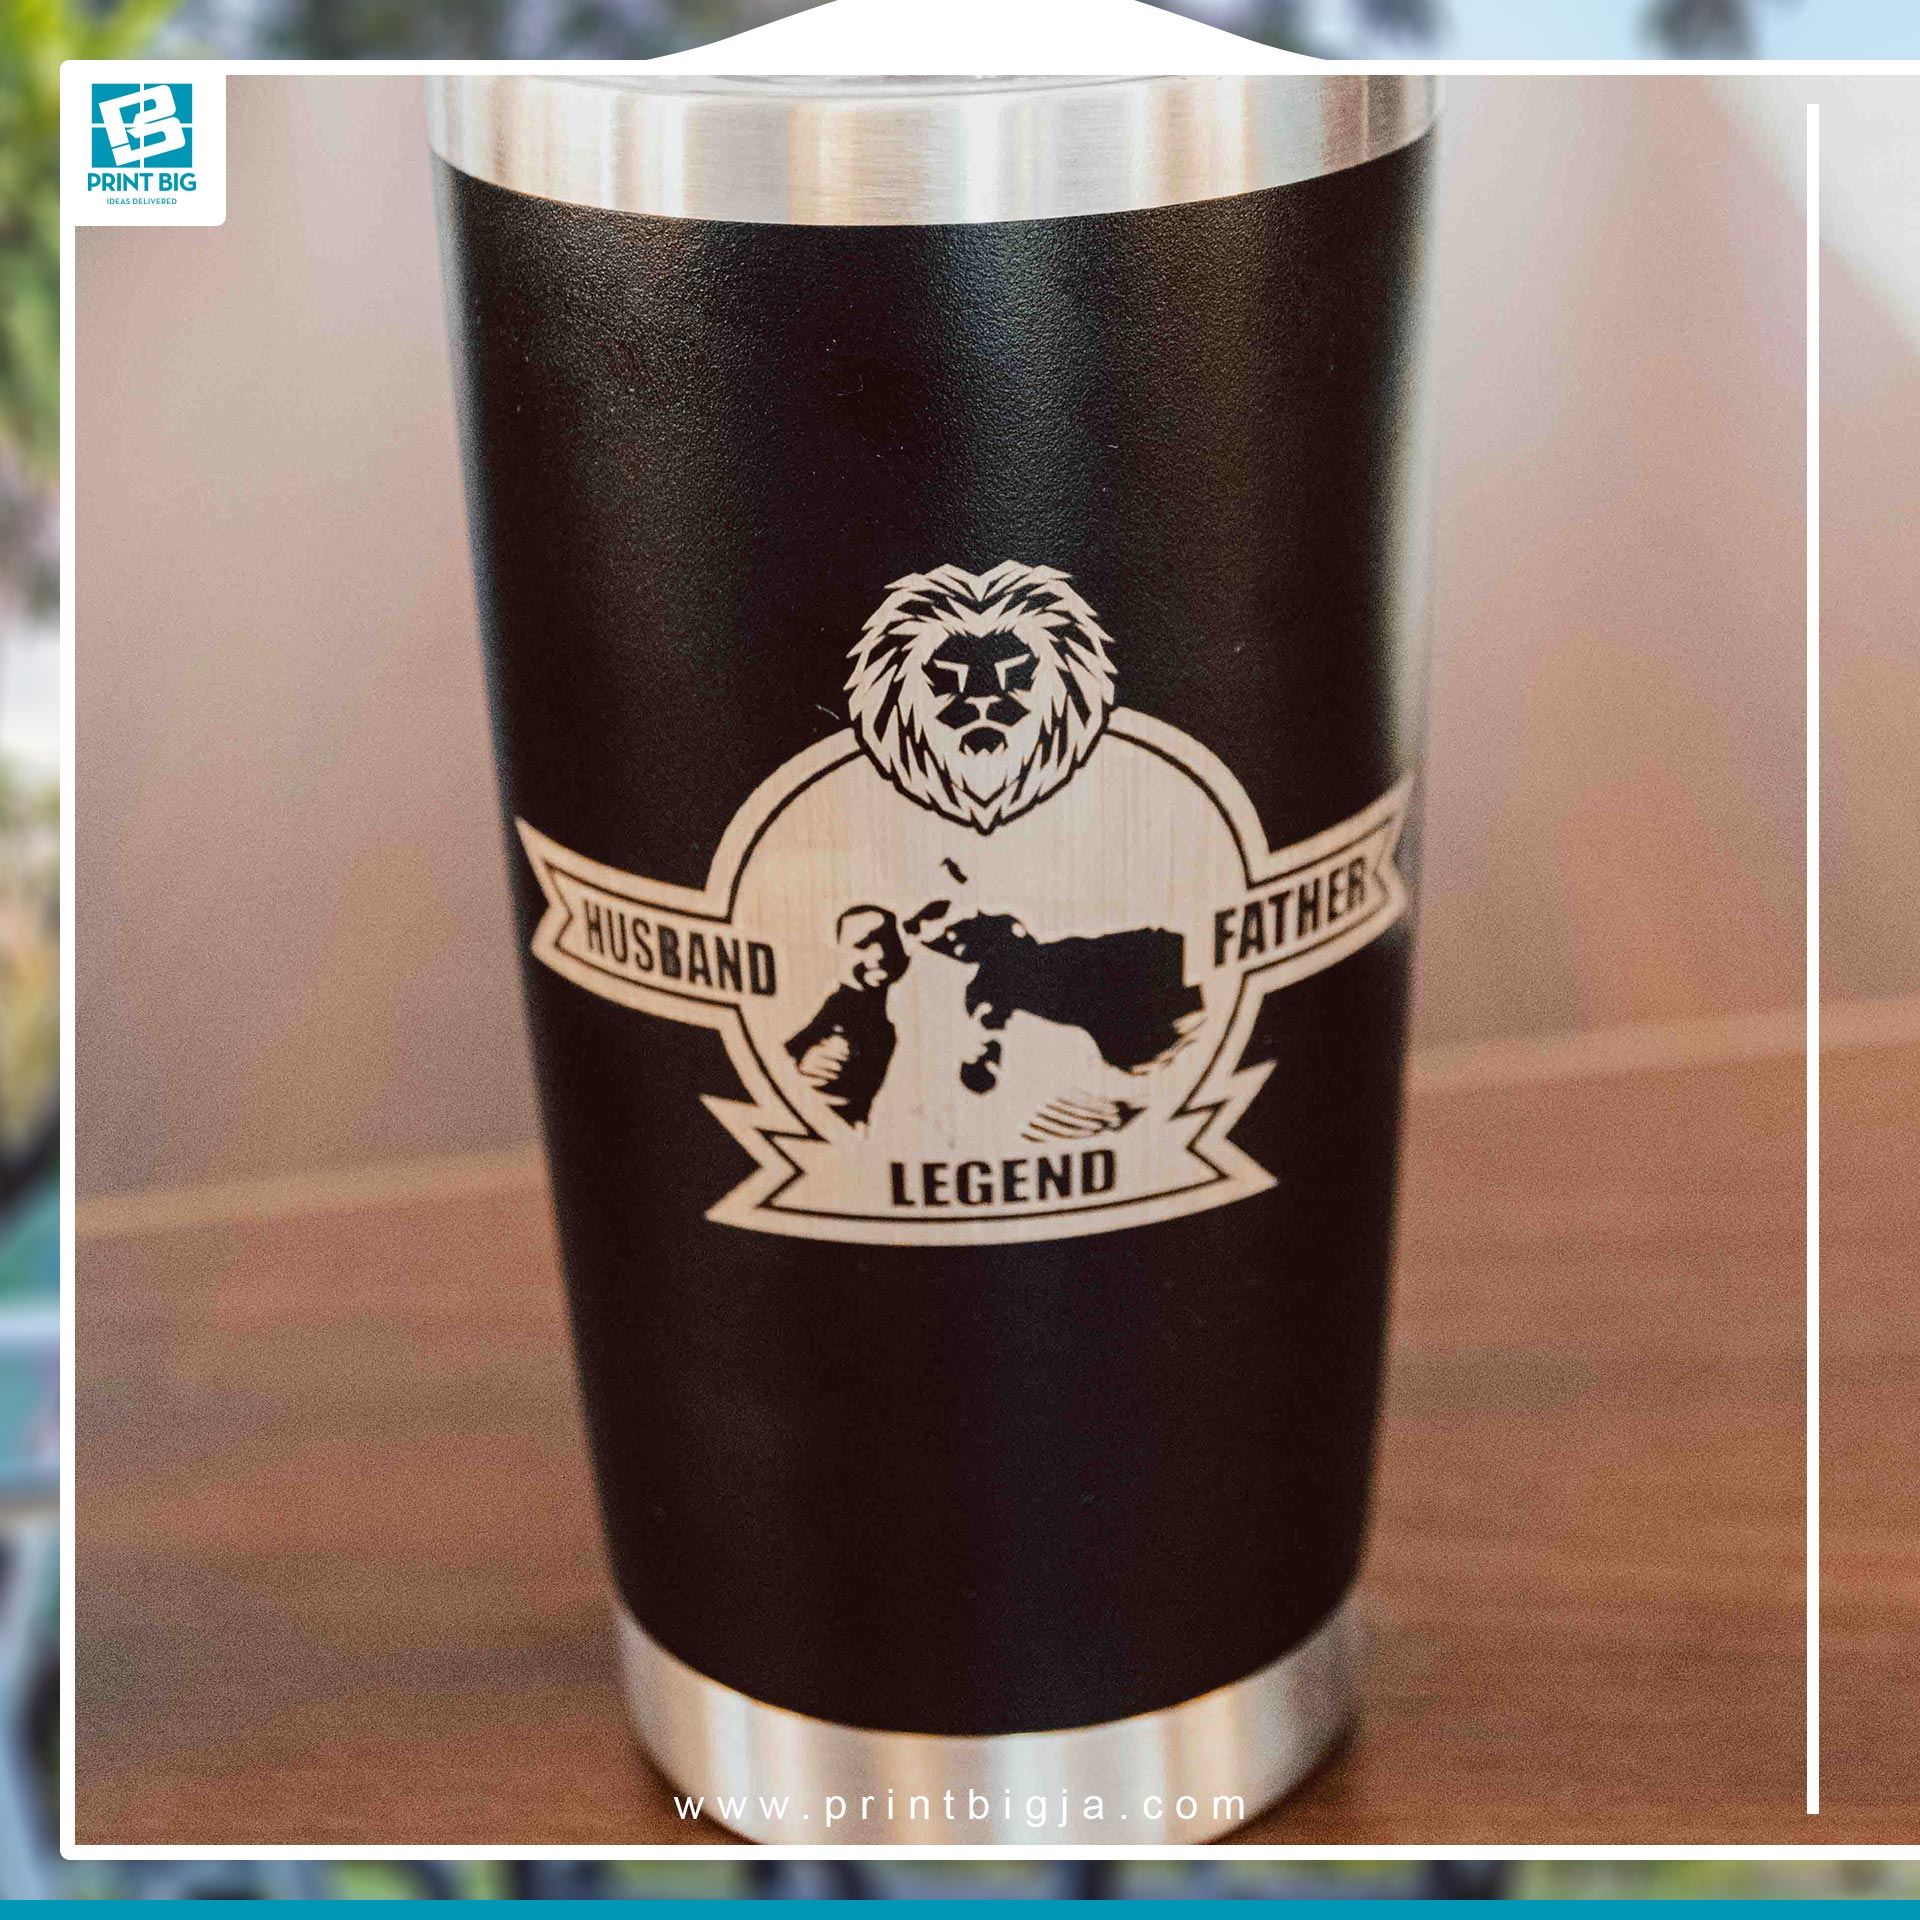 Find laser engraved gifts for any occasion